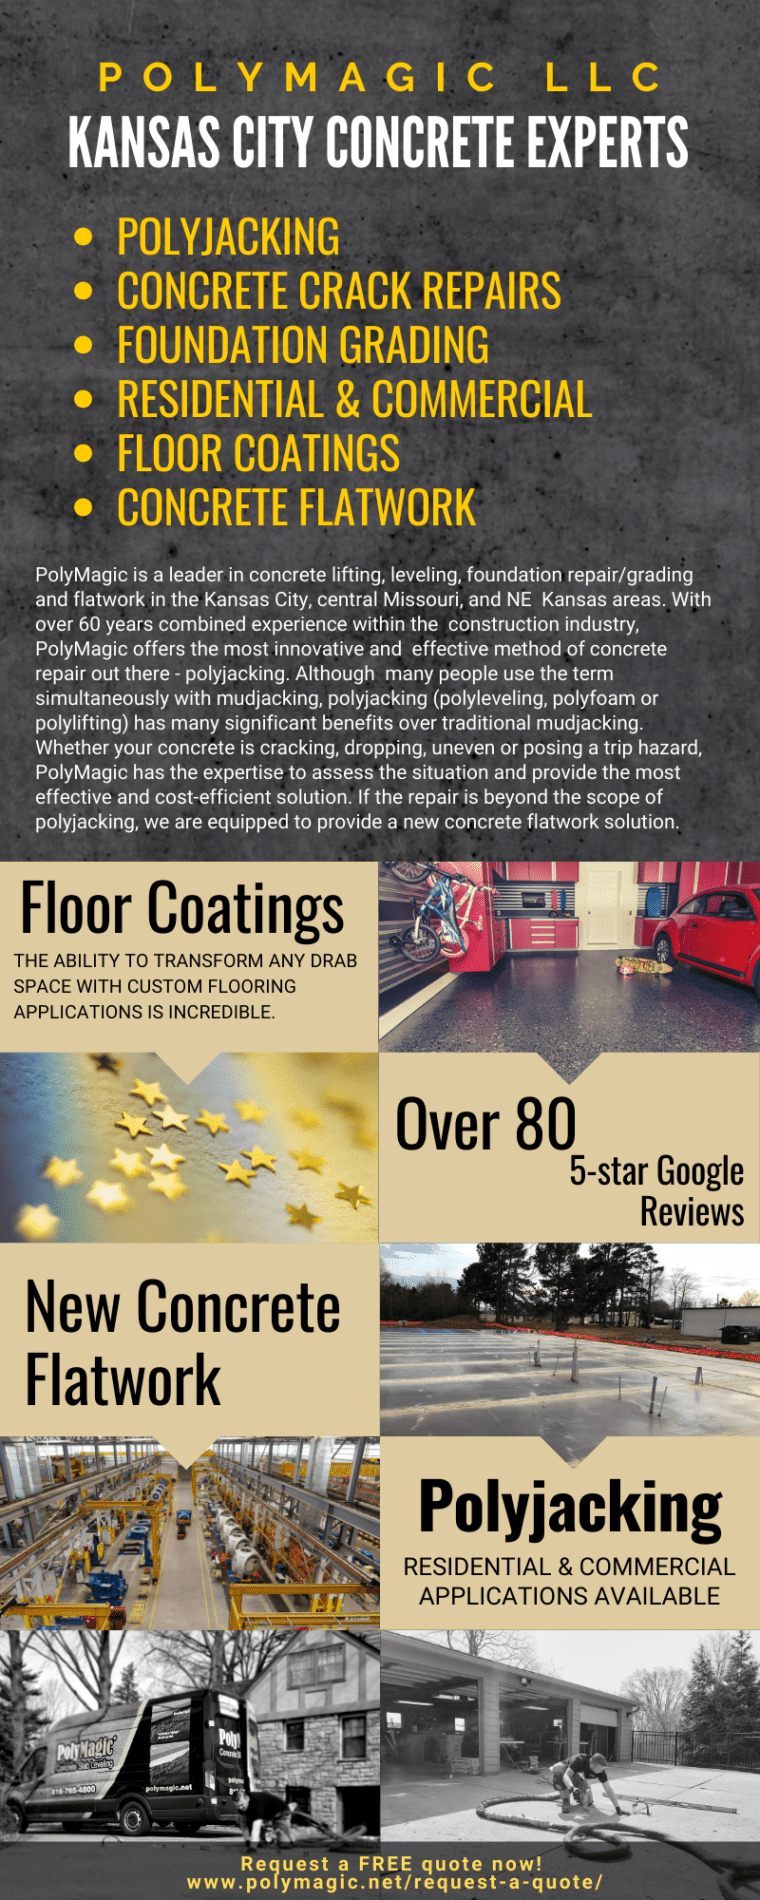 Check out these concrete services